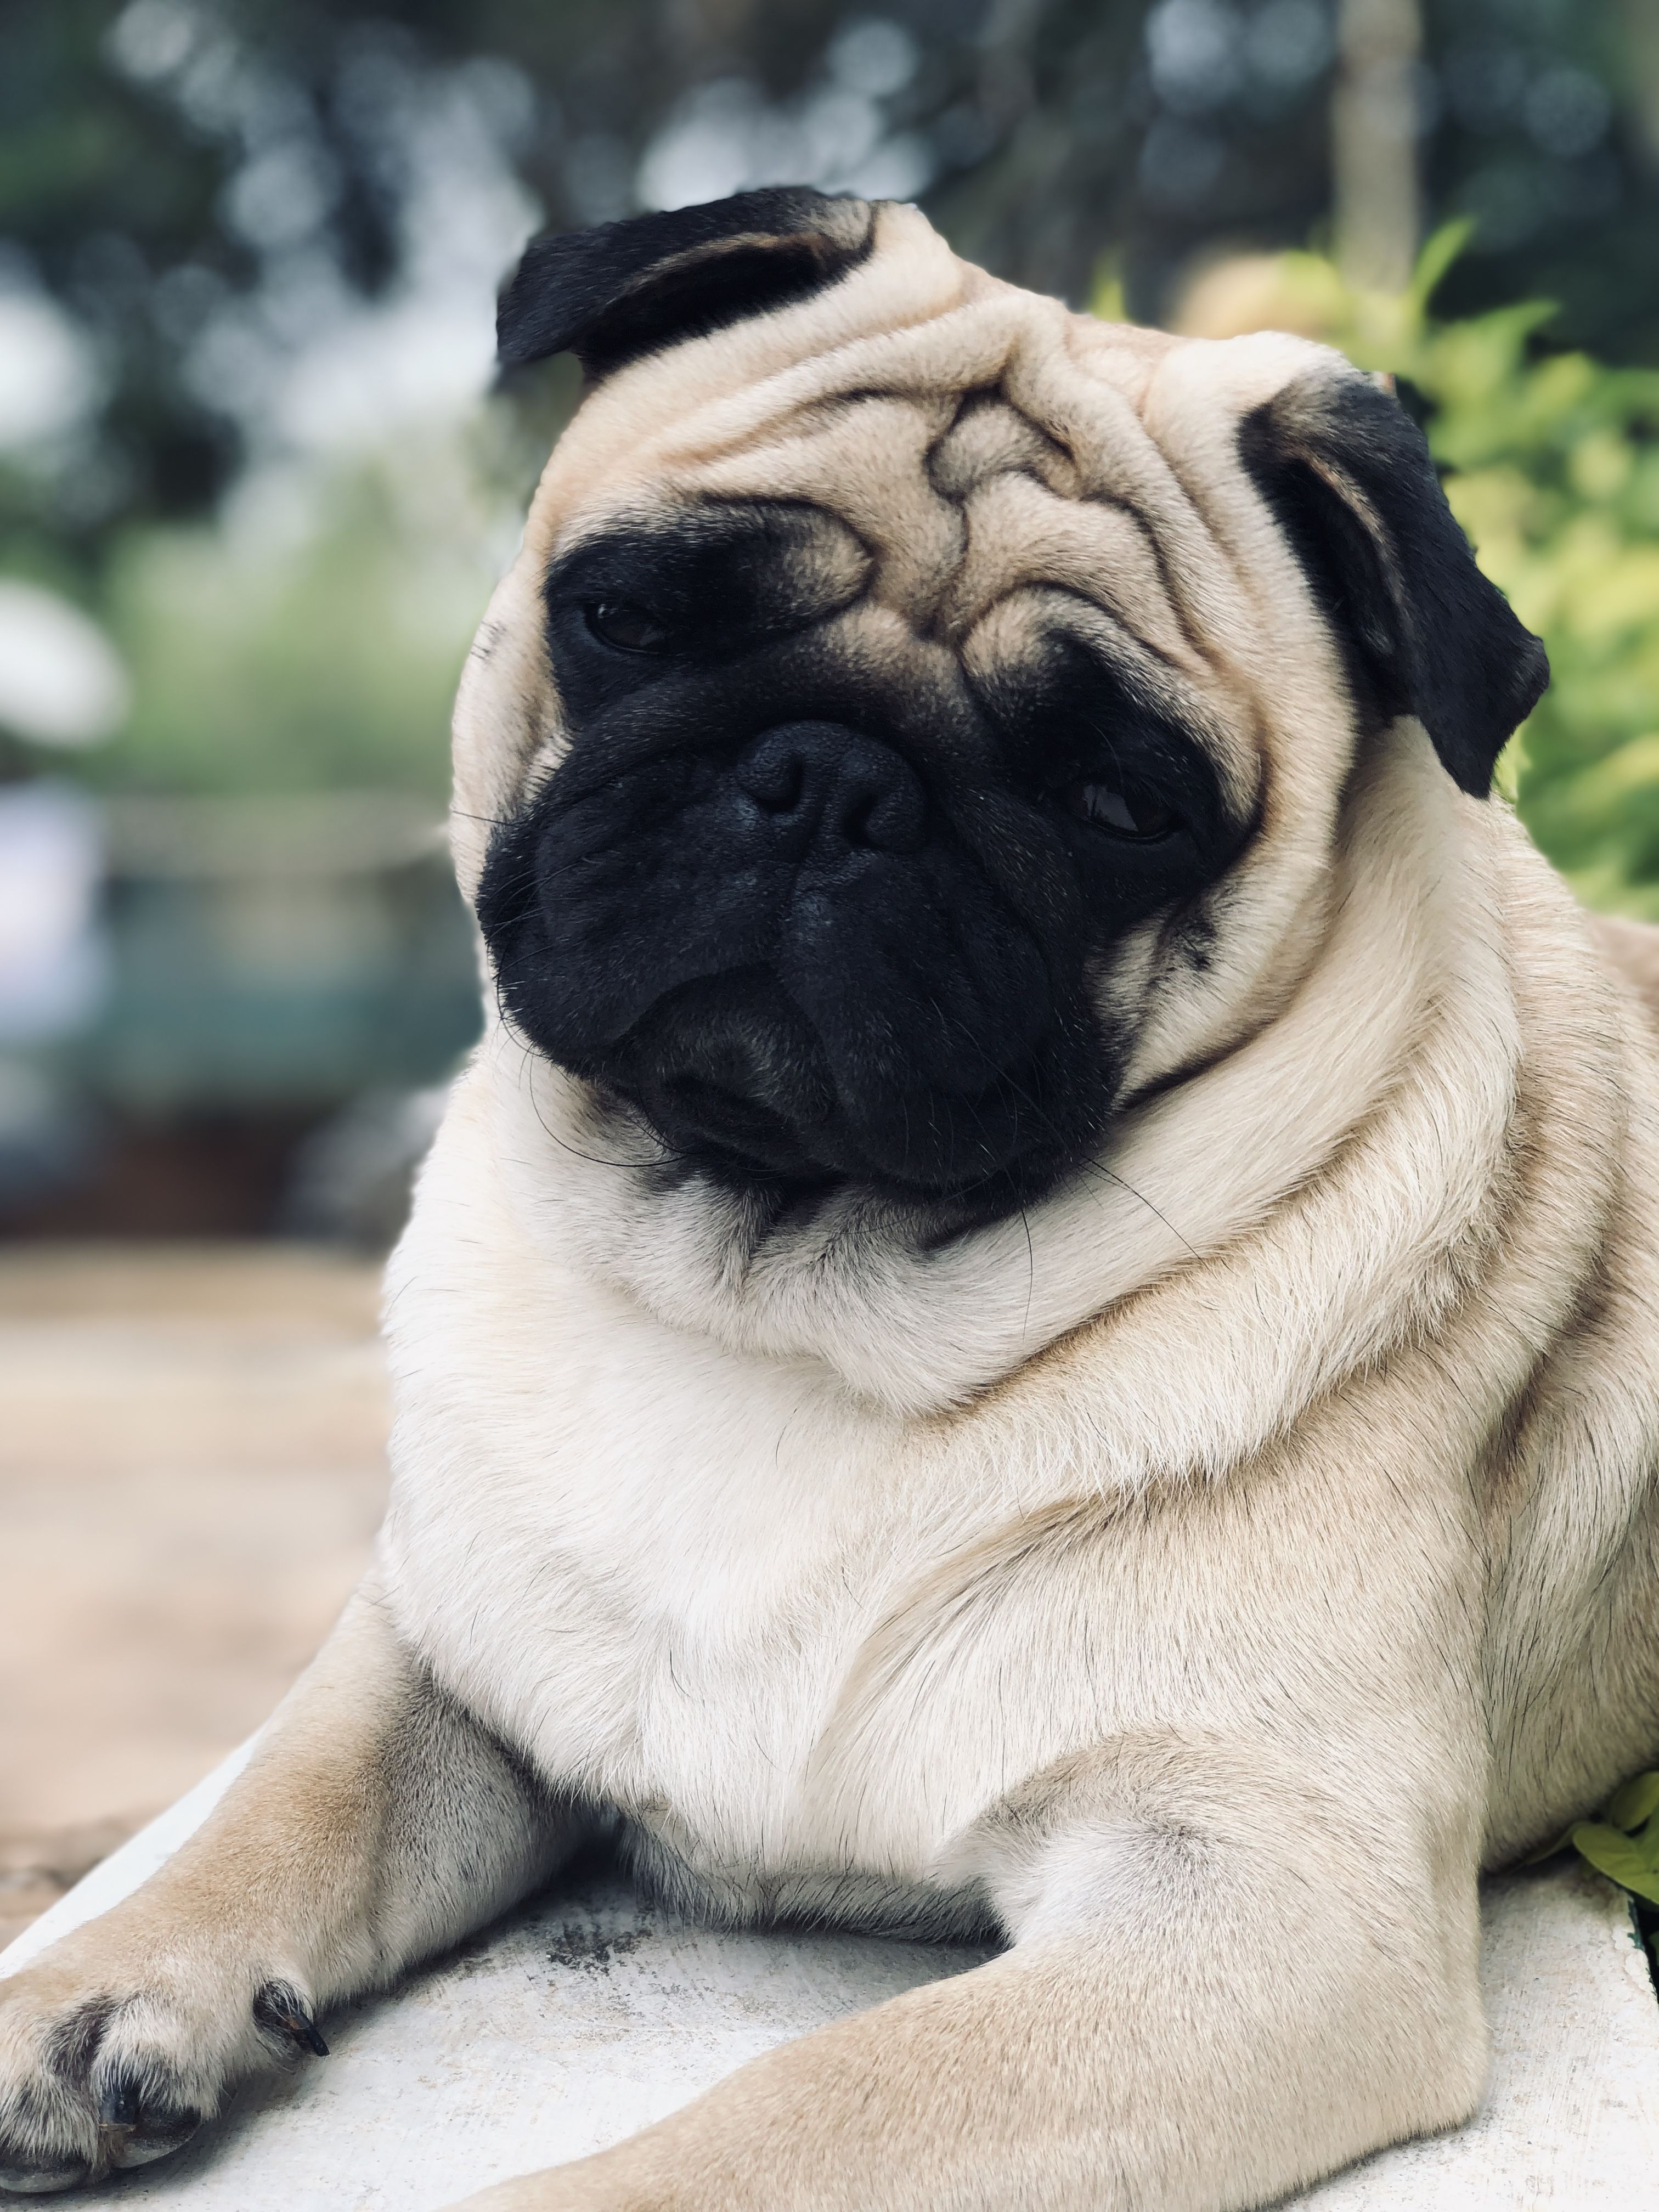 Pin By Cooljay On Pogo The Pug Cute Pug Puppies Cute Pugs Dog